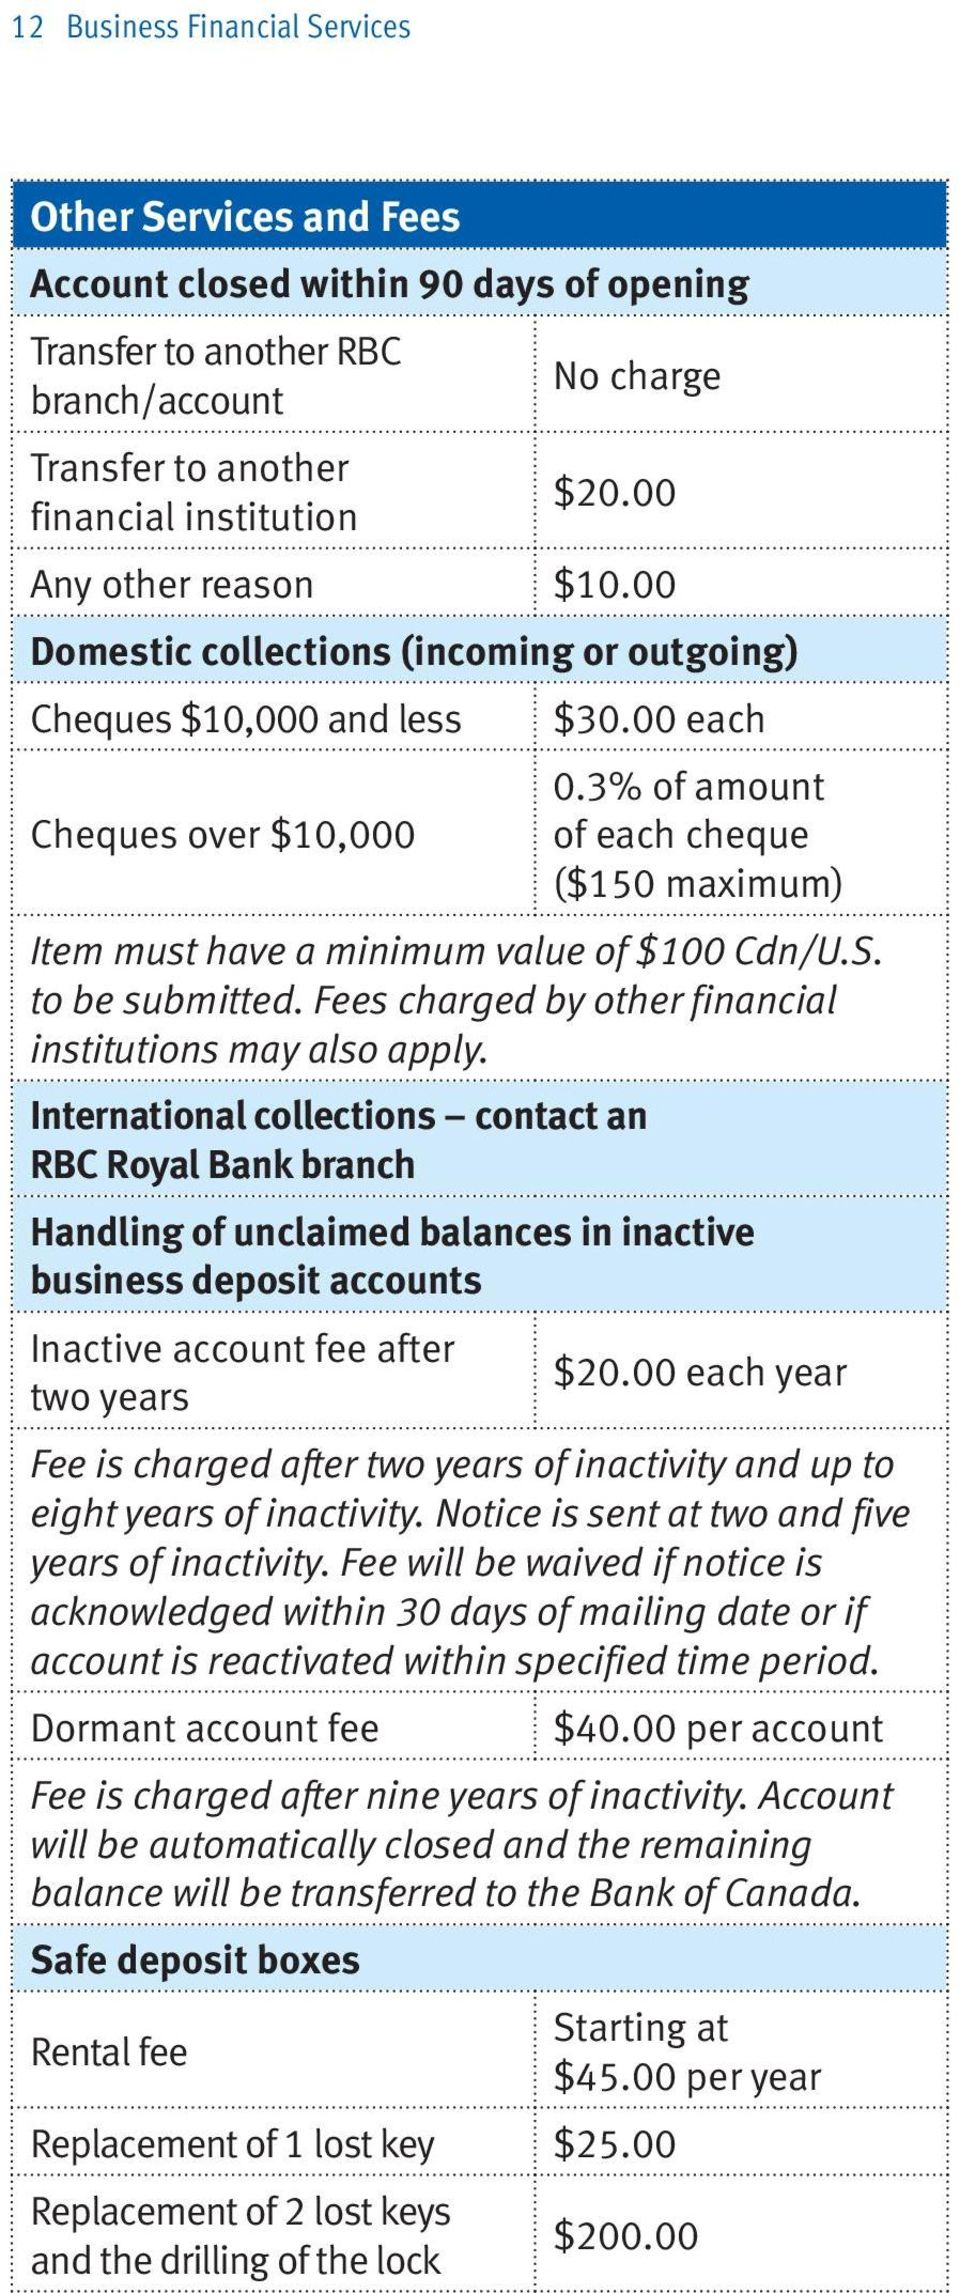 3% of amount Cheques over $10,000 of each cheque ($150 maximum) Item must have a minimum value of $100 Cdn/U.S. to be submitted. Fees charged by other financial institutions may also apply.